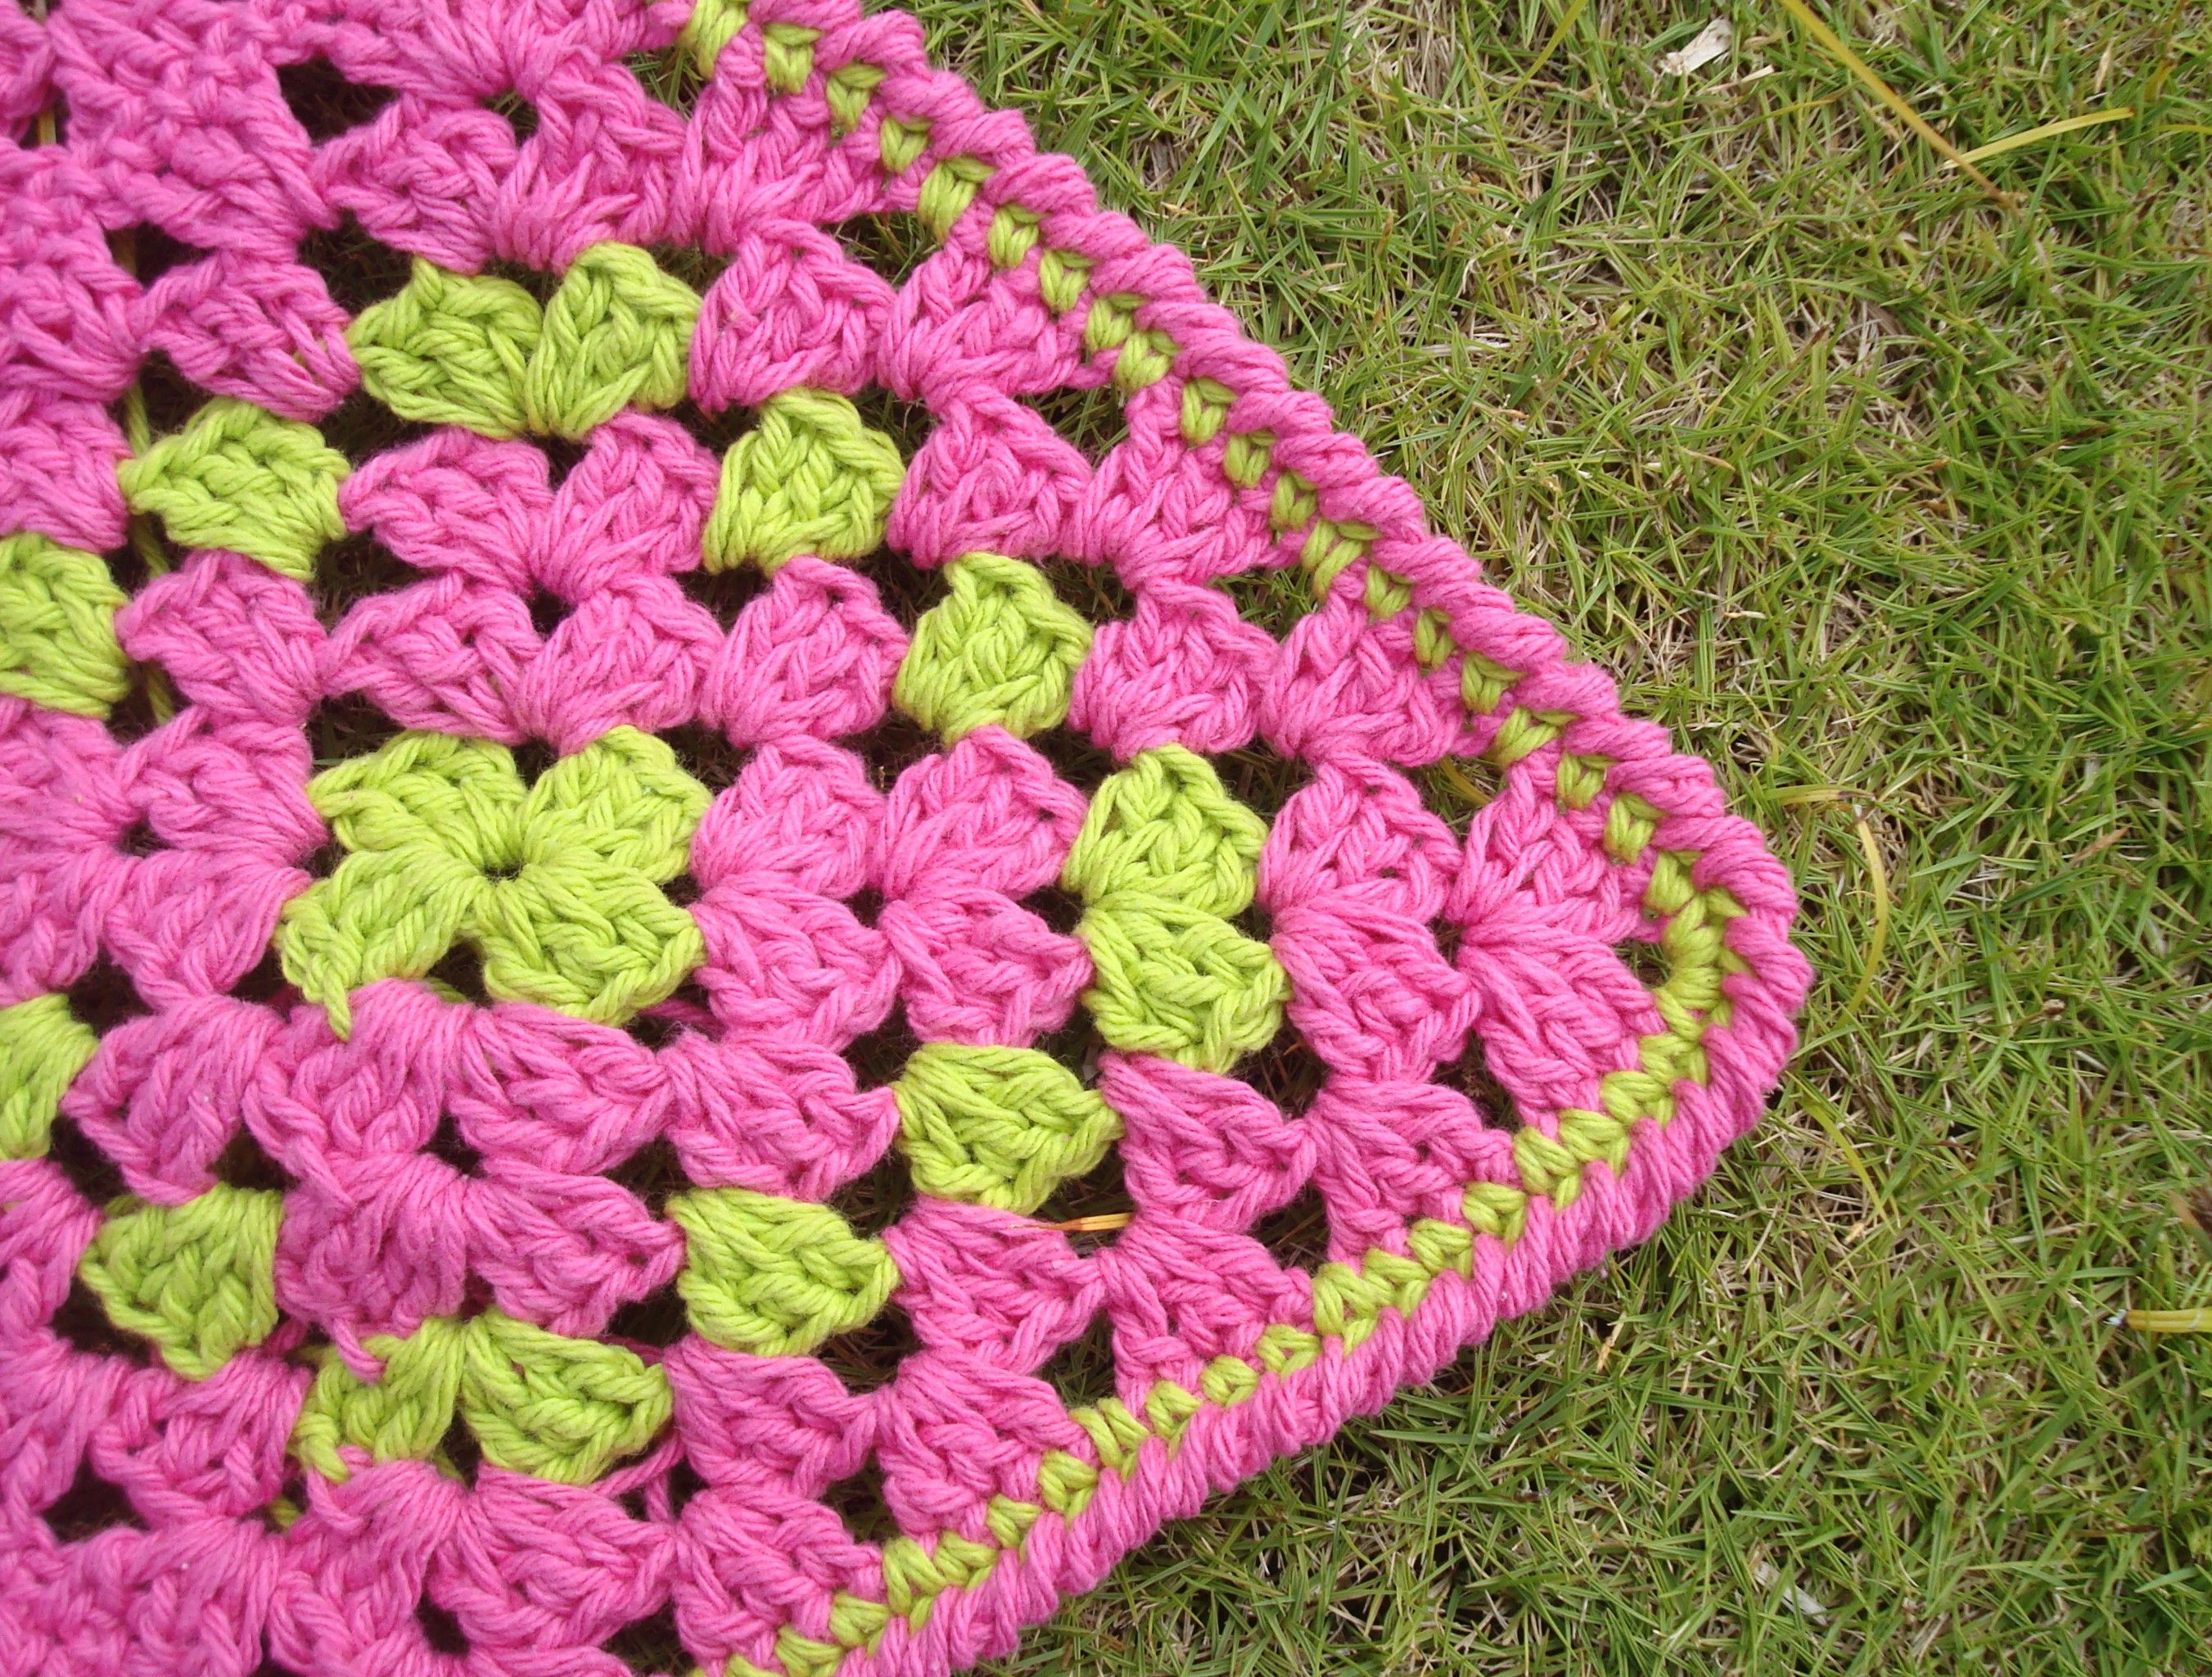 Hastily Made Granny Square Baby Blanket Leads to Nice Refinements ...